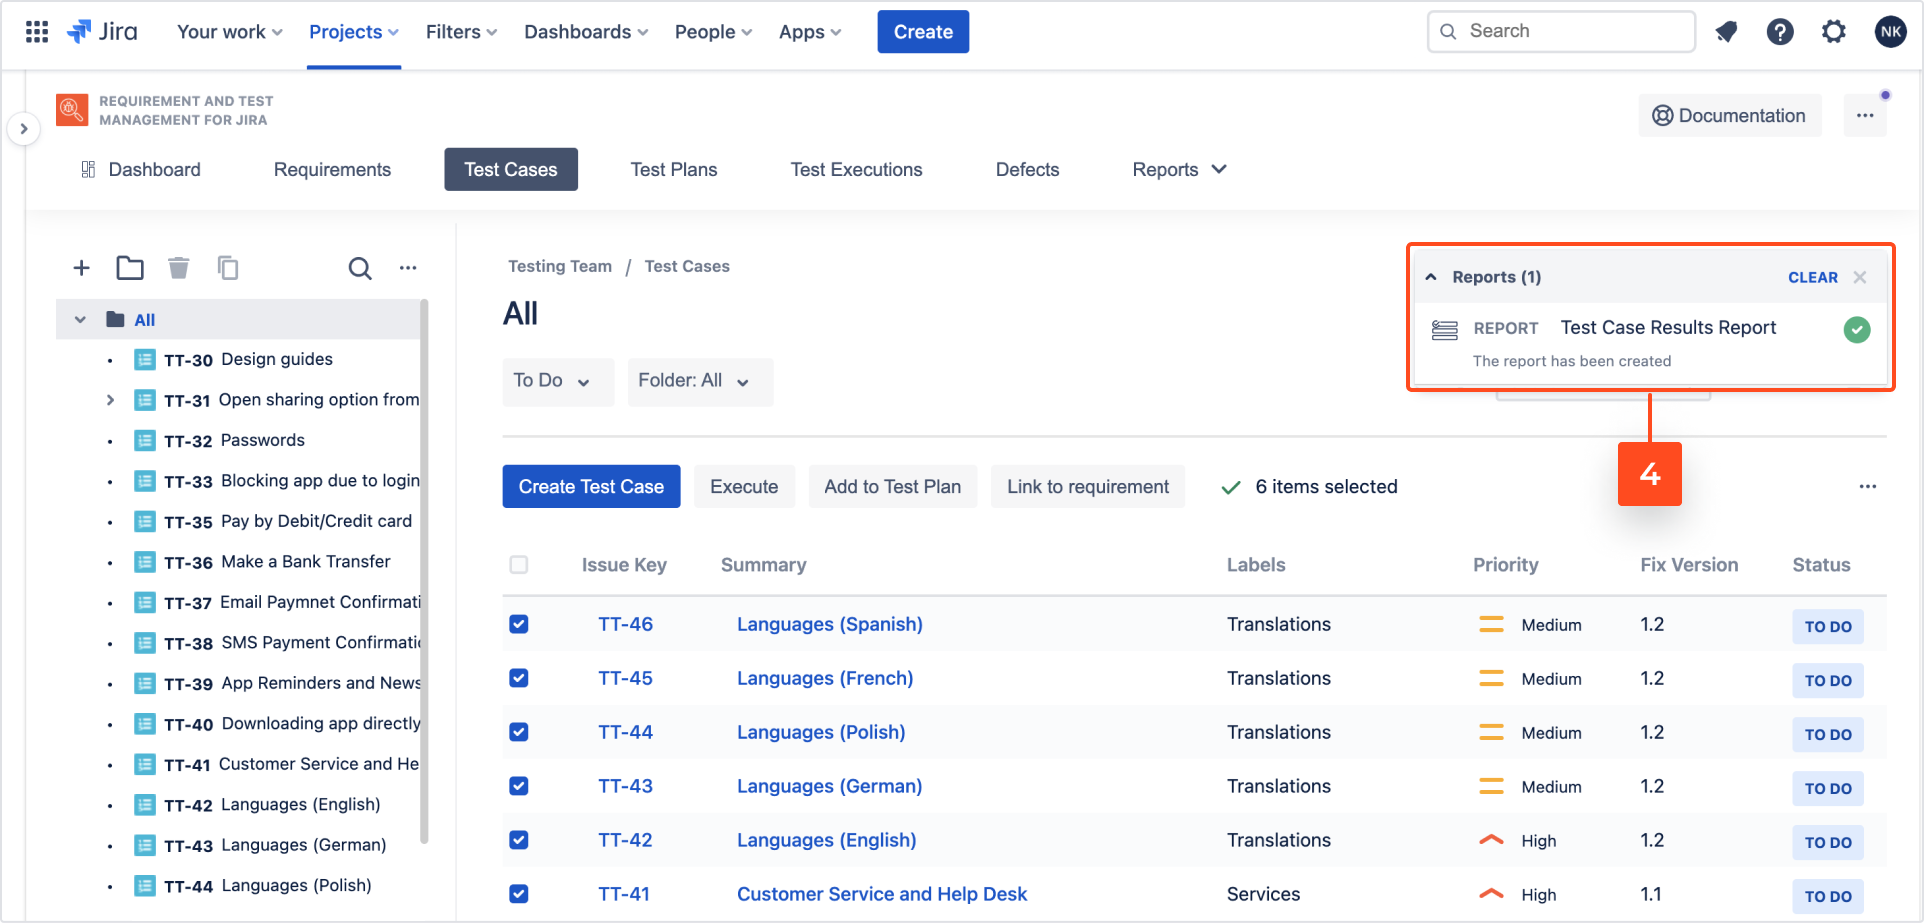 Explore test cases with Requirements and Test Management for Jira app